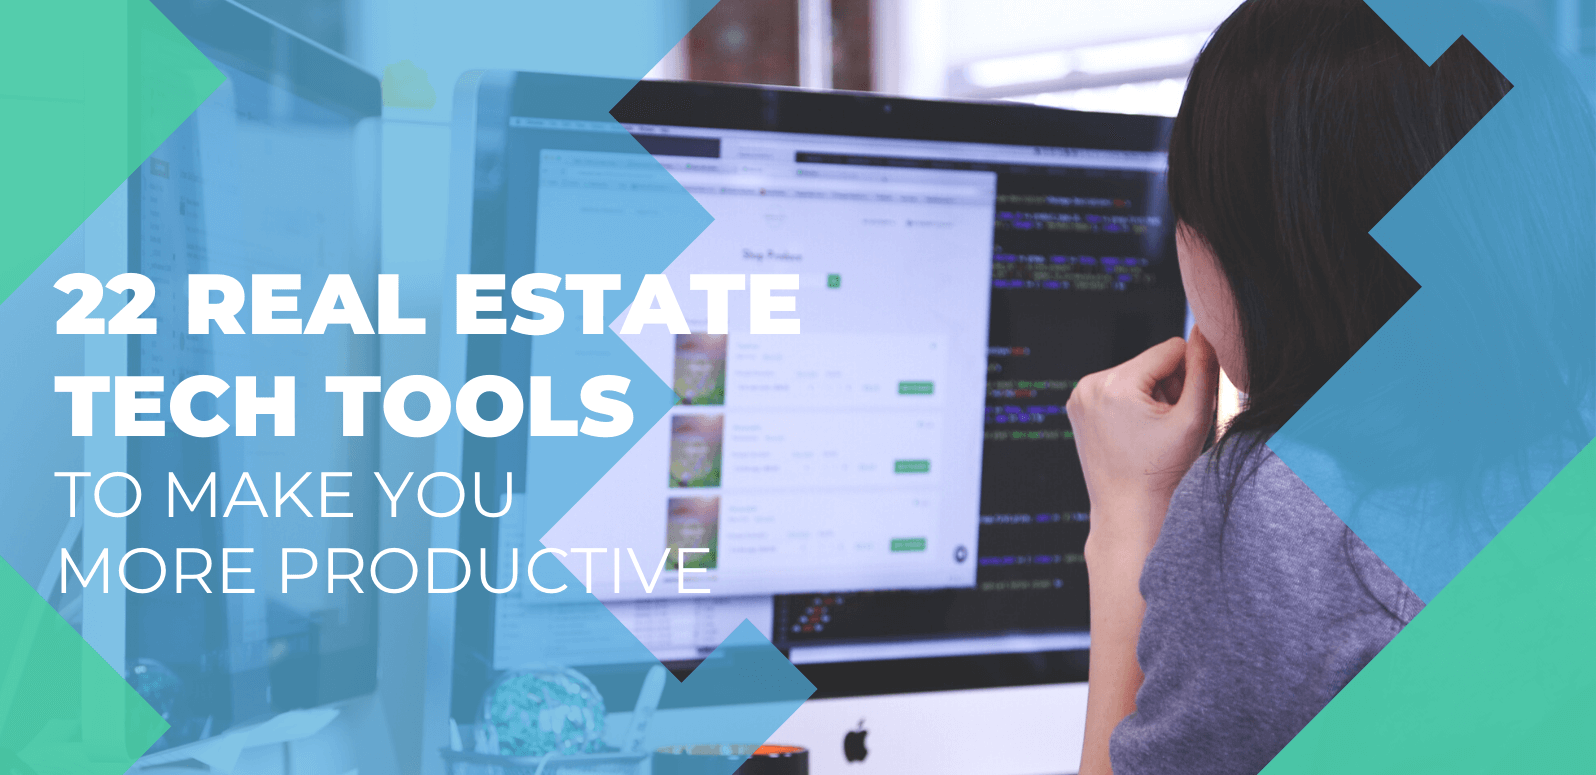 22 Real Estate Tech Tools To Make You More Productive In 2020